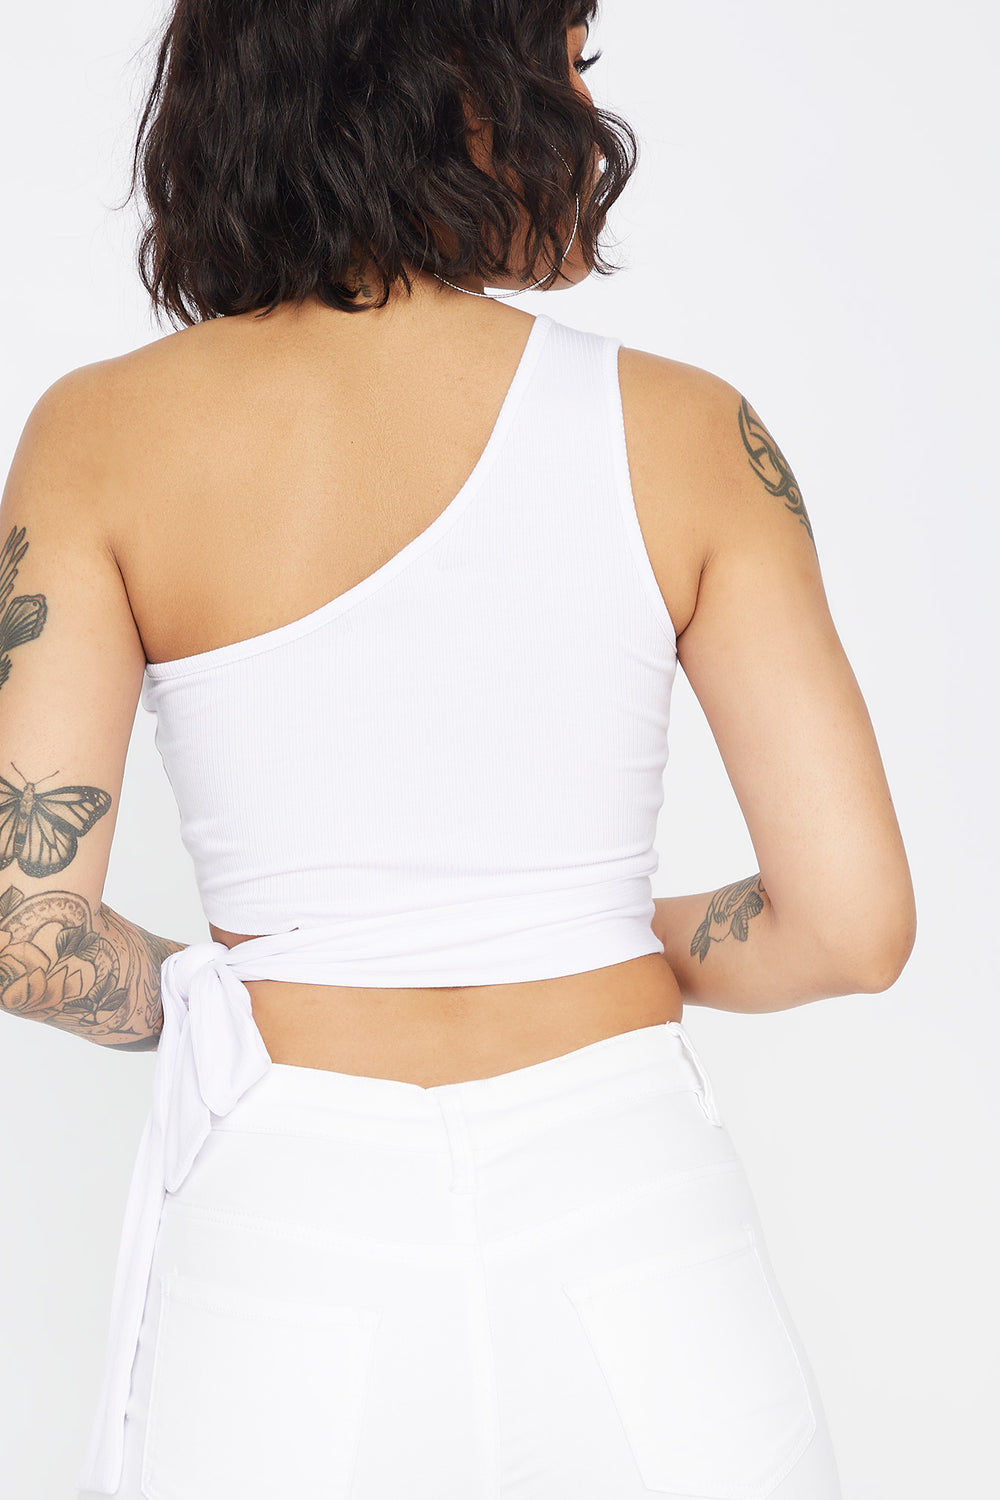 Ribbed One Shoulder Side Tie Cropped Top White